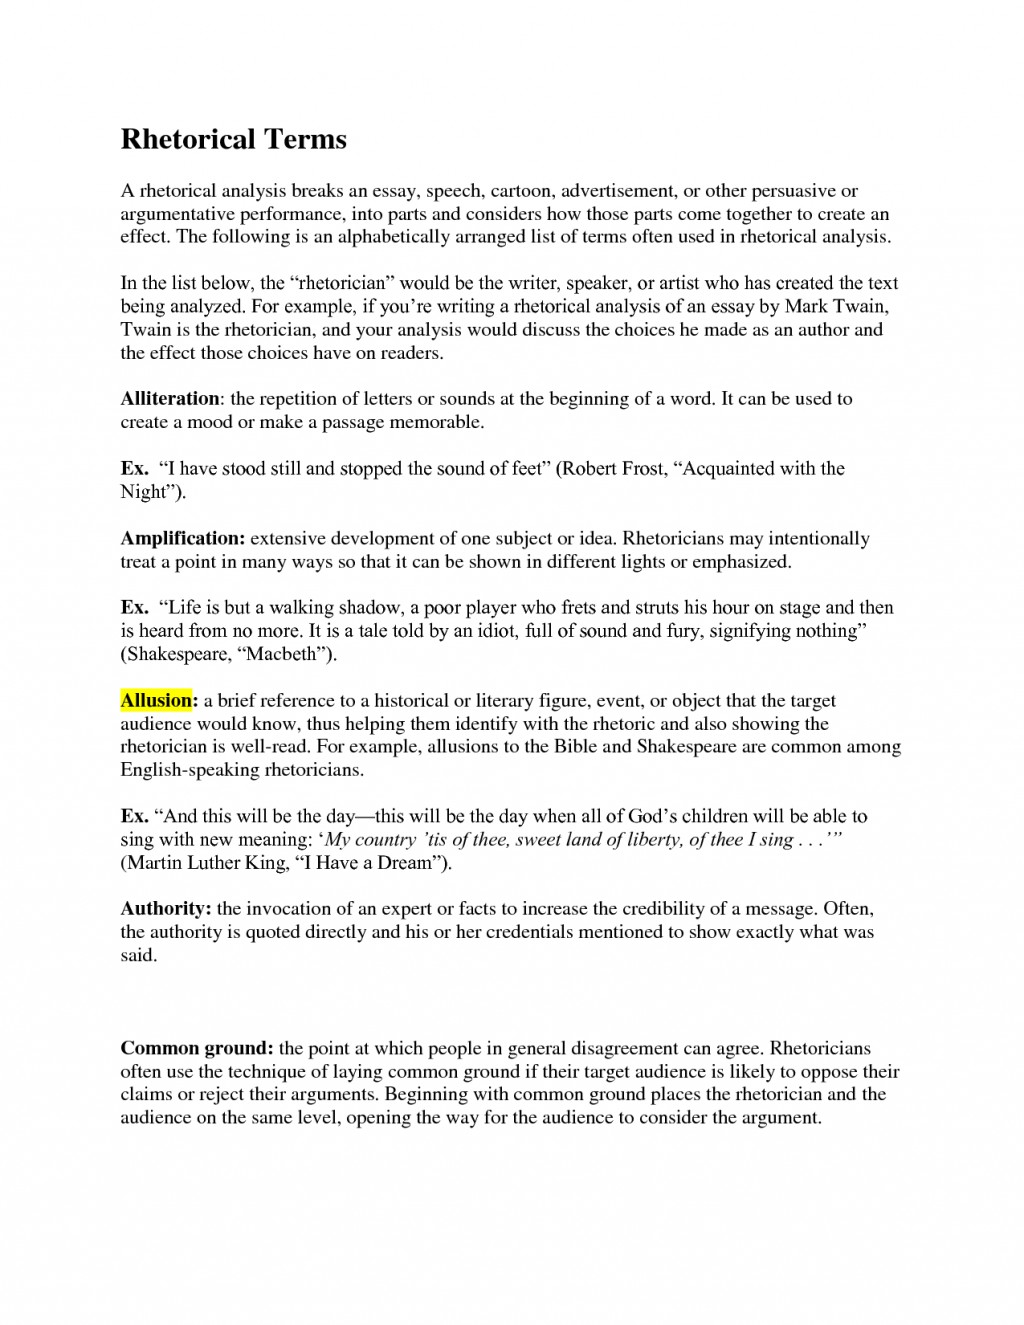 005 Analysis Argument English Writing Literature Essays Essay Example Striking Definition Review Expository Large